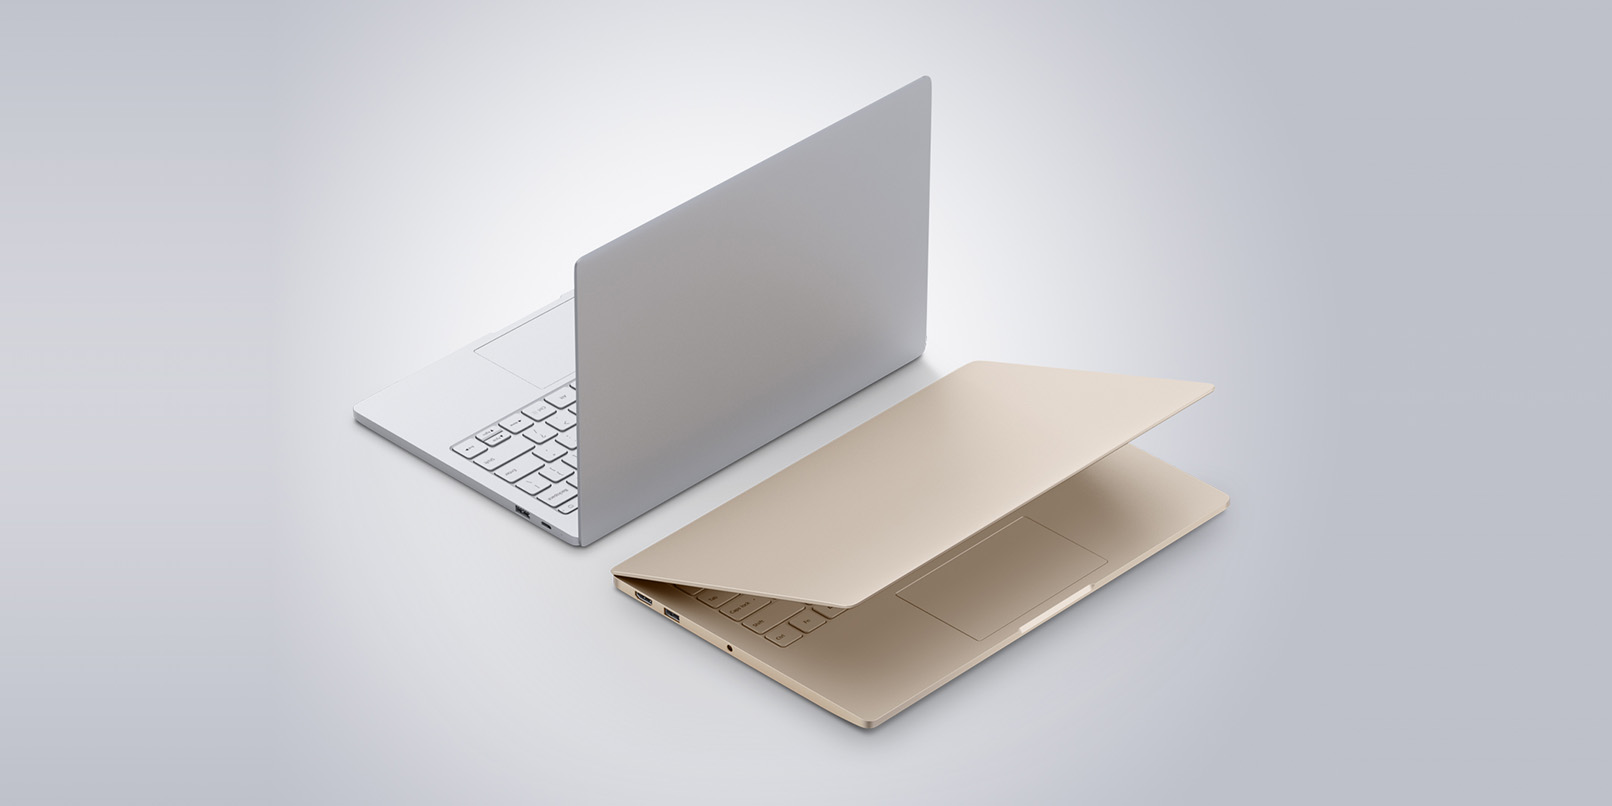 Xiaomi's getting into the laptop game with its MacBook Air ...